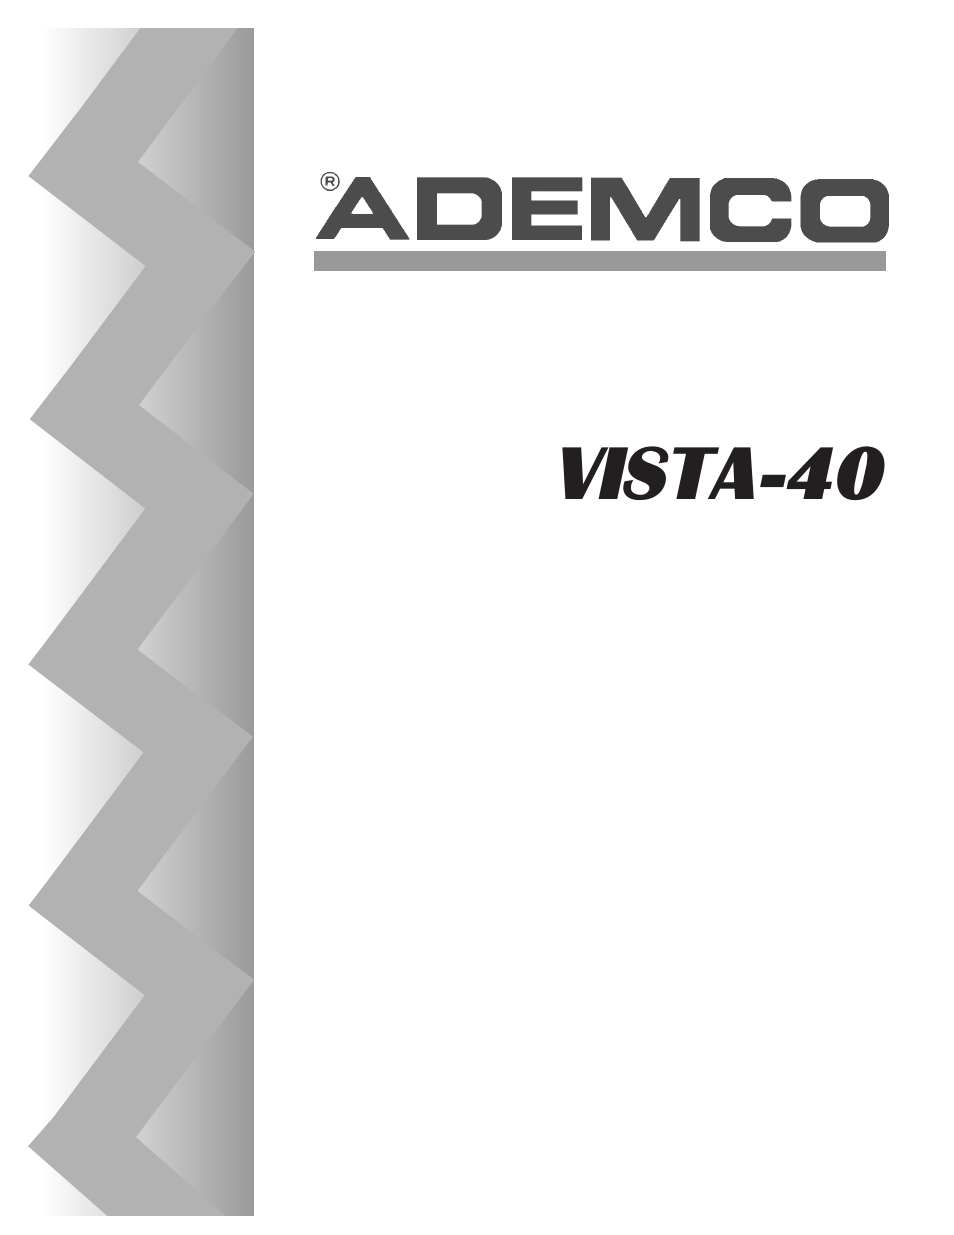 guardian technologies ademco vista 40 user manual 122 pages also rh manualsdir com Ademco Vista 40 User Guide vista 20 user manual